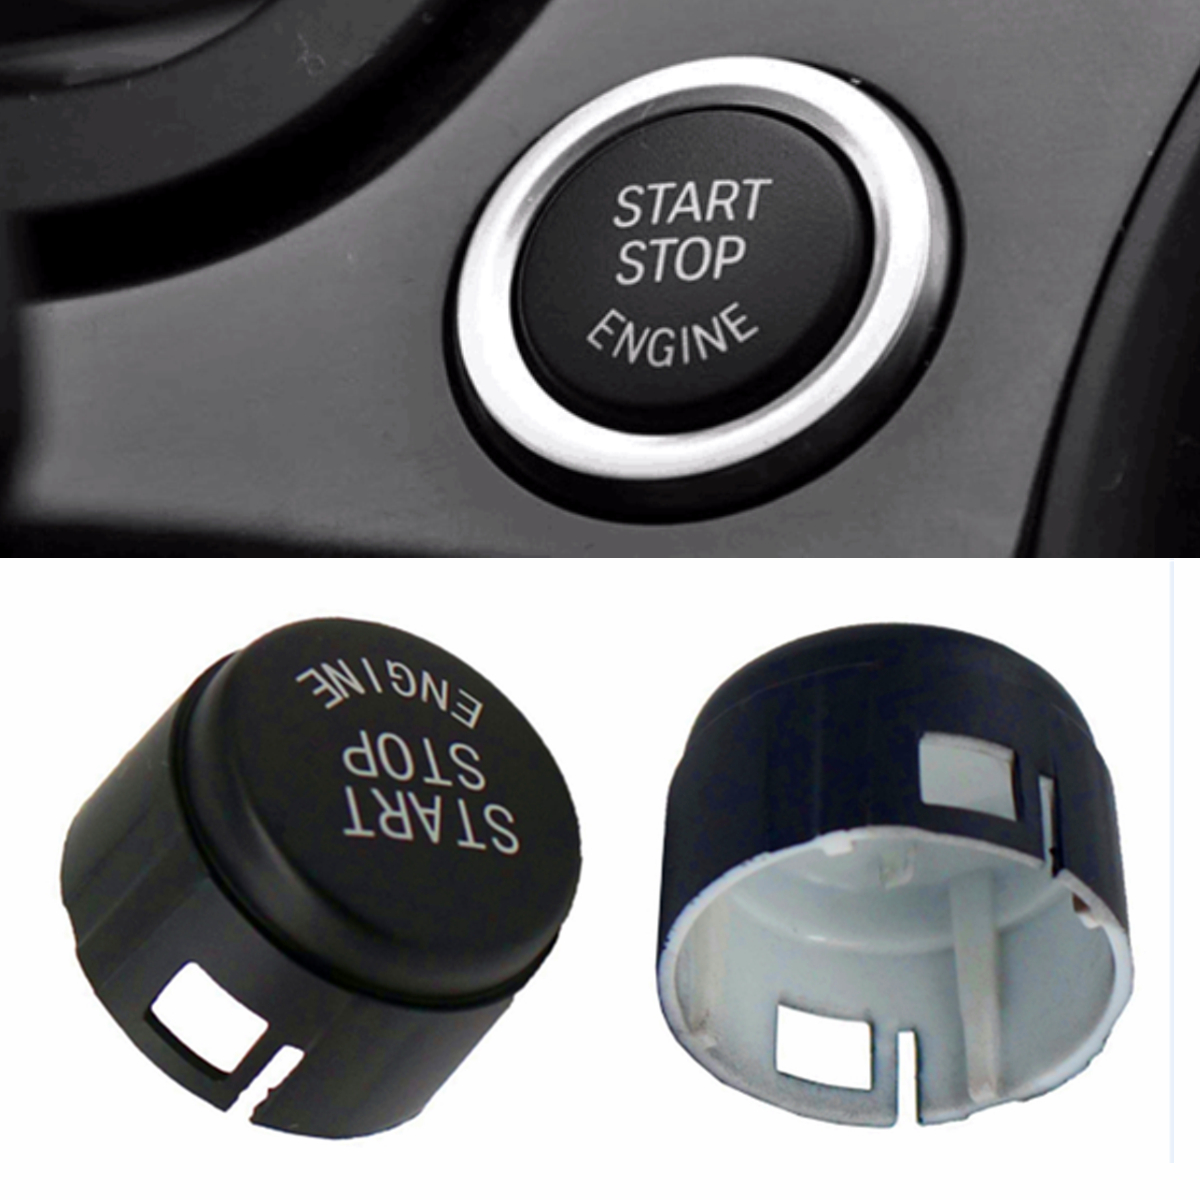 New Car Start Stop Engine Button Switch Replace Cover Key <font><b>Accessories</b></font> for <font><b>BMW</b></font> 5 6 7 F01 F02 F10 <font><b>F11</b></font> F12 2009-2013 61319153832 image